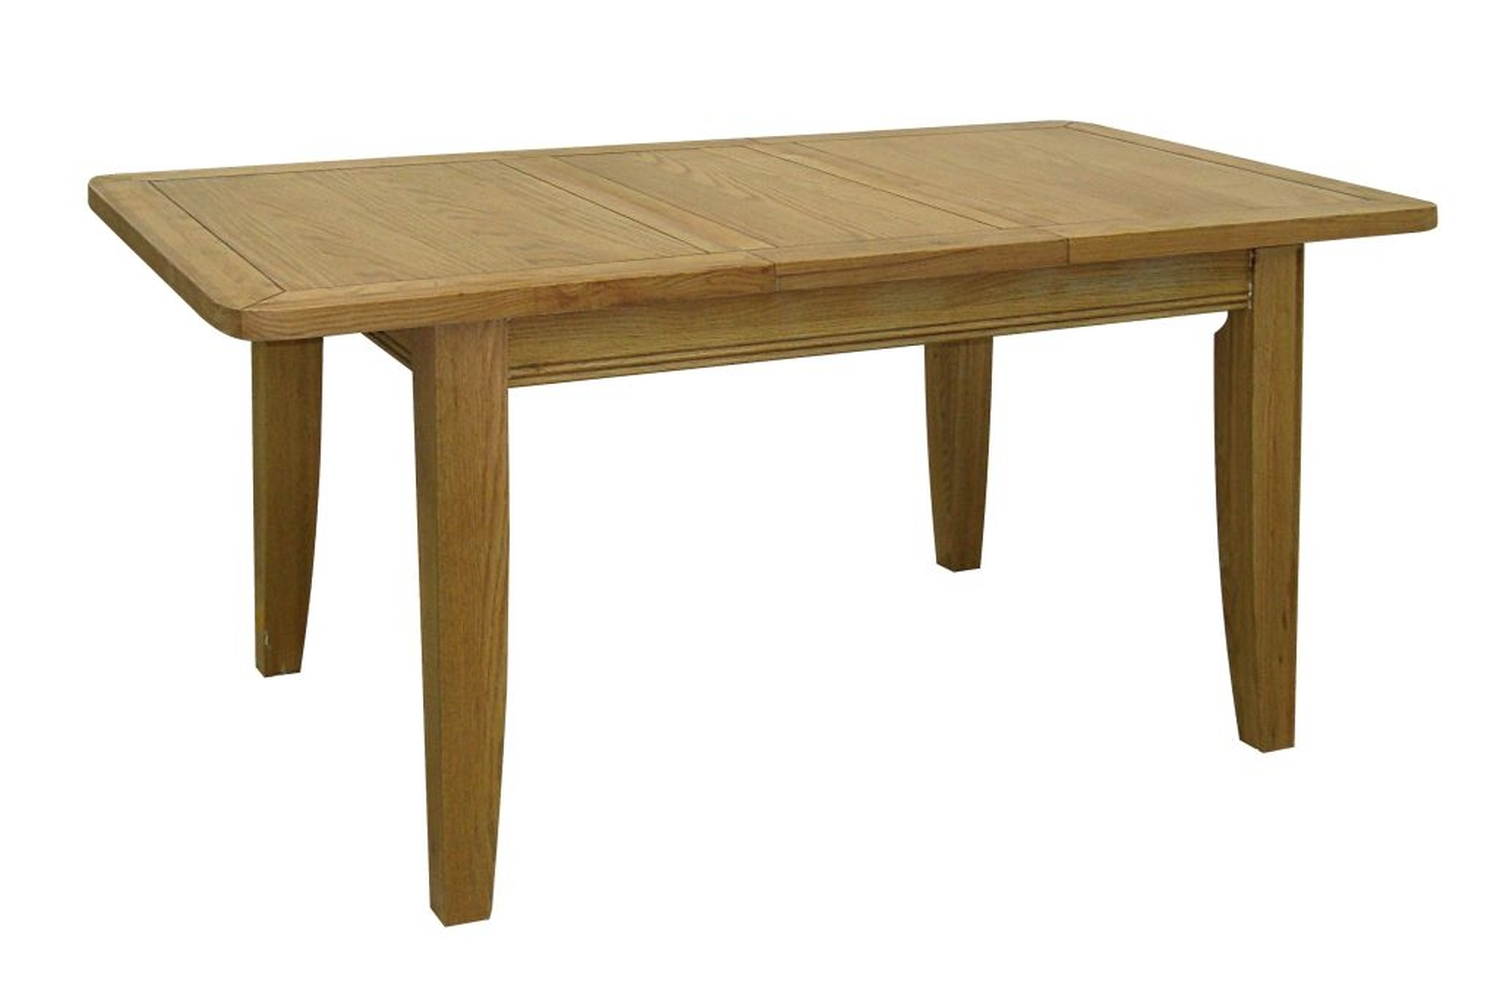 Linden Solid Oak Dining Room Furniture Extending Dining Table EBay